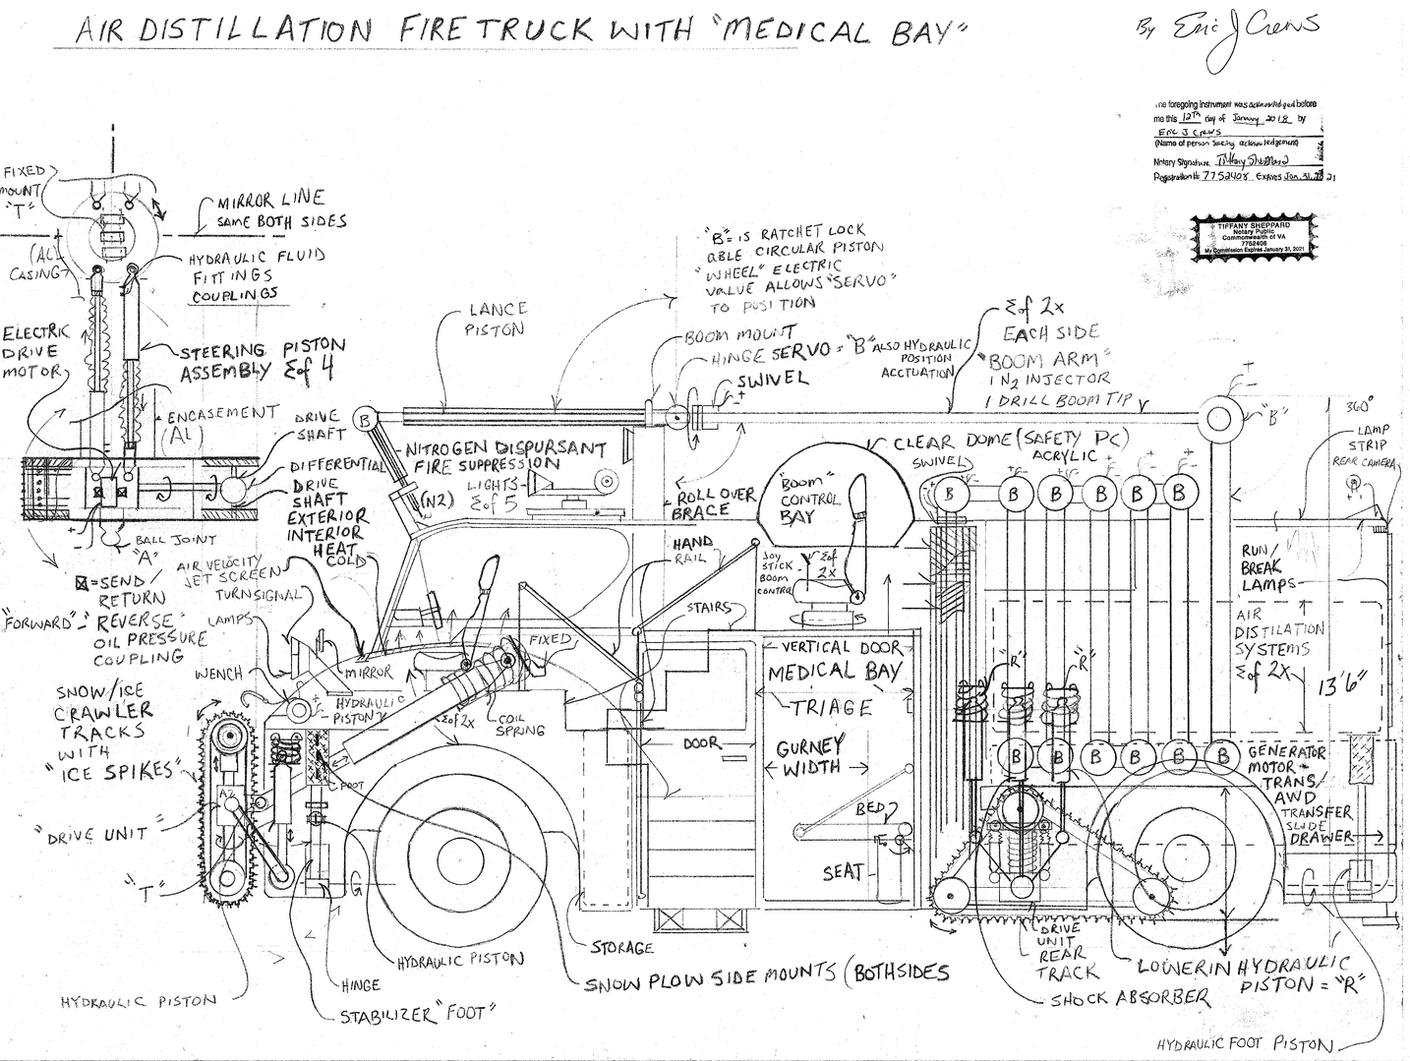 Air Distillation Fire Truck Engine Diagram Disclaimer If Attempting To Produce These Design Yourself Additional Engineering May Be Required Desk Inc Will Not Held Liable